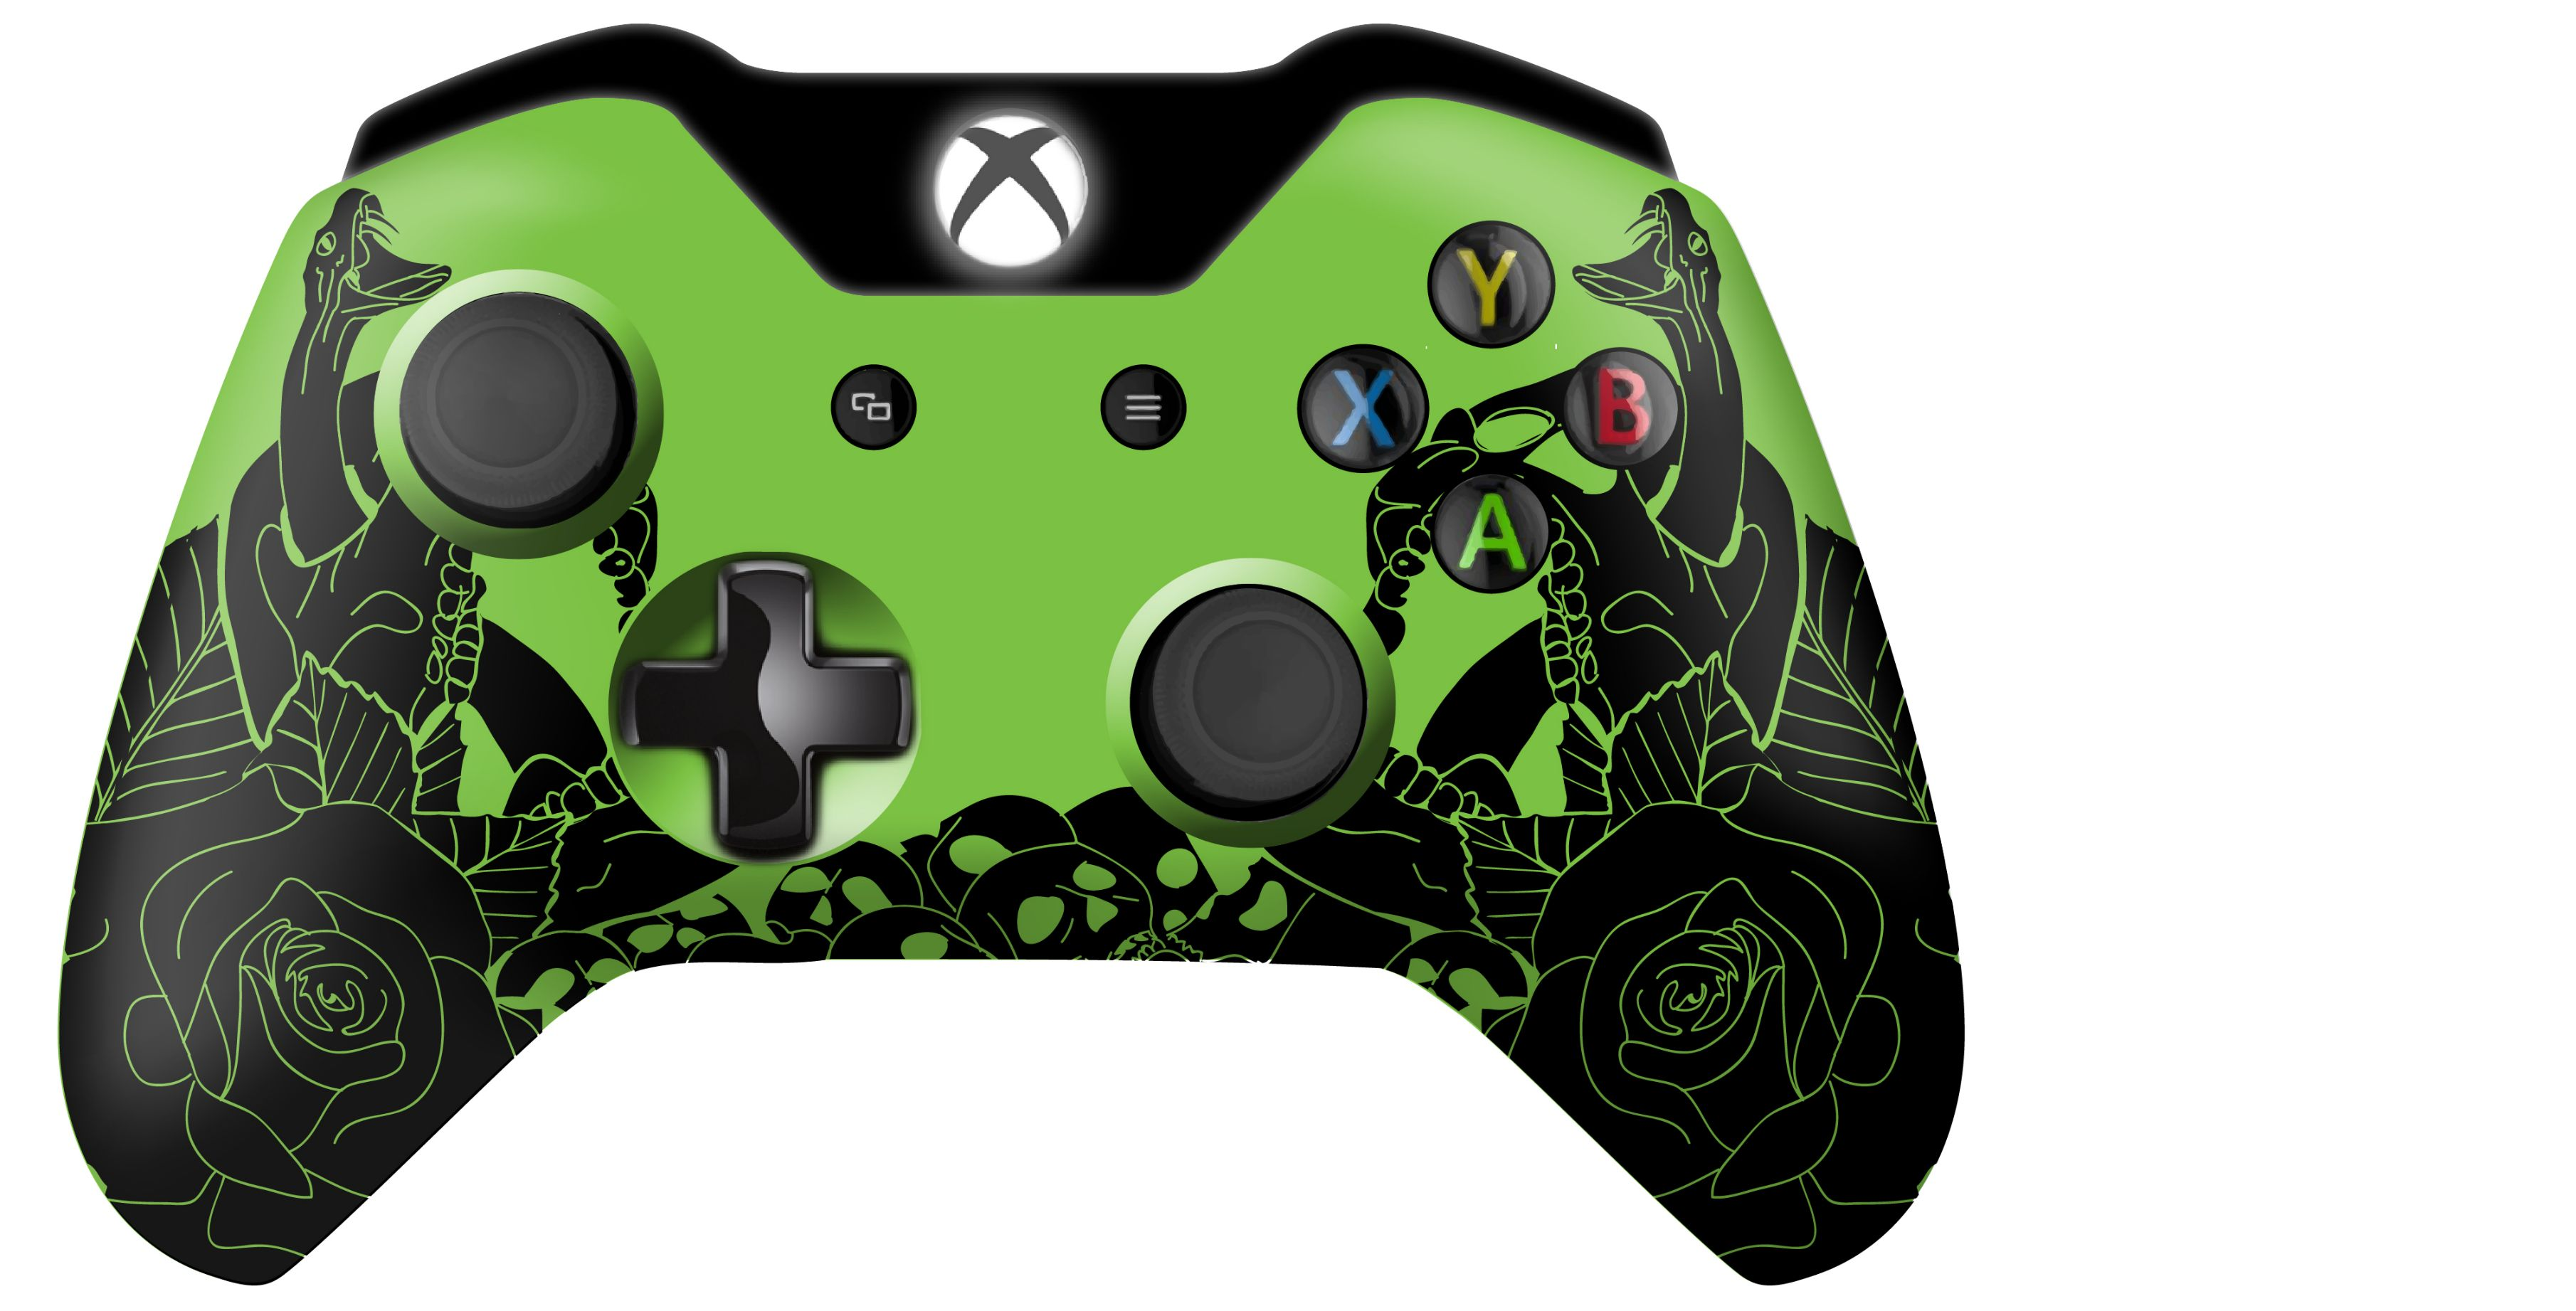 Xbox clipart minecraft. One controller drawing at